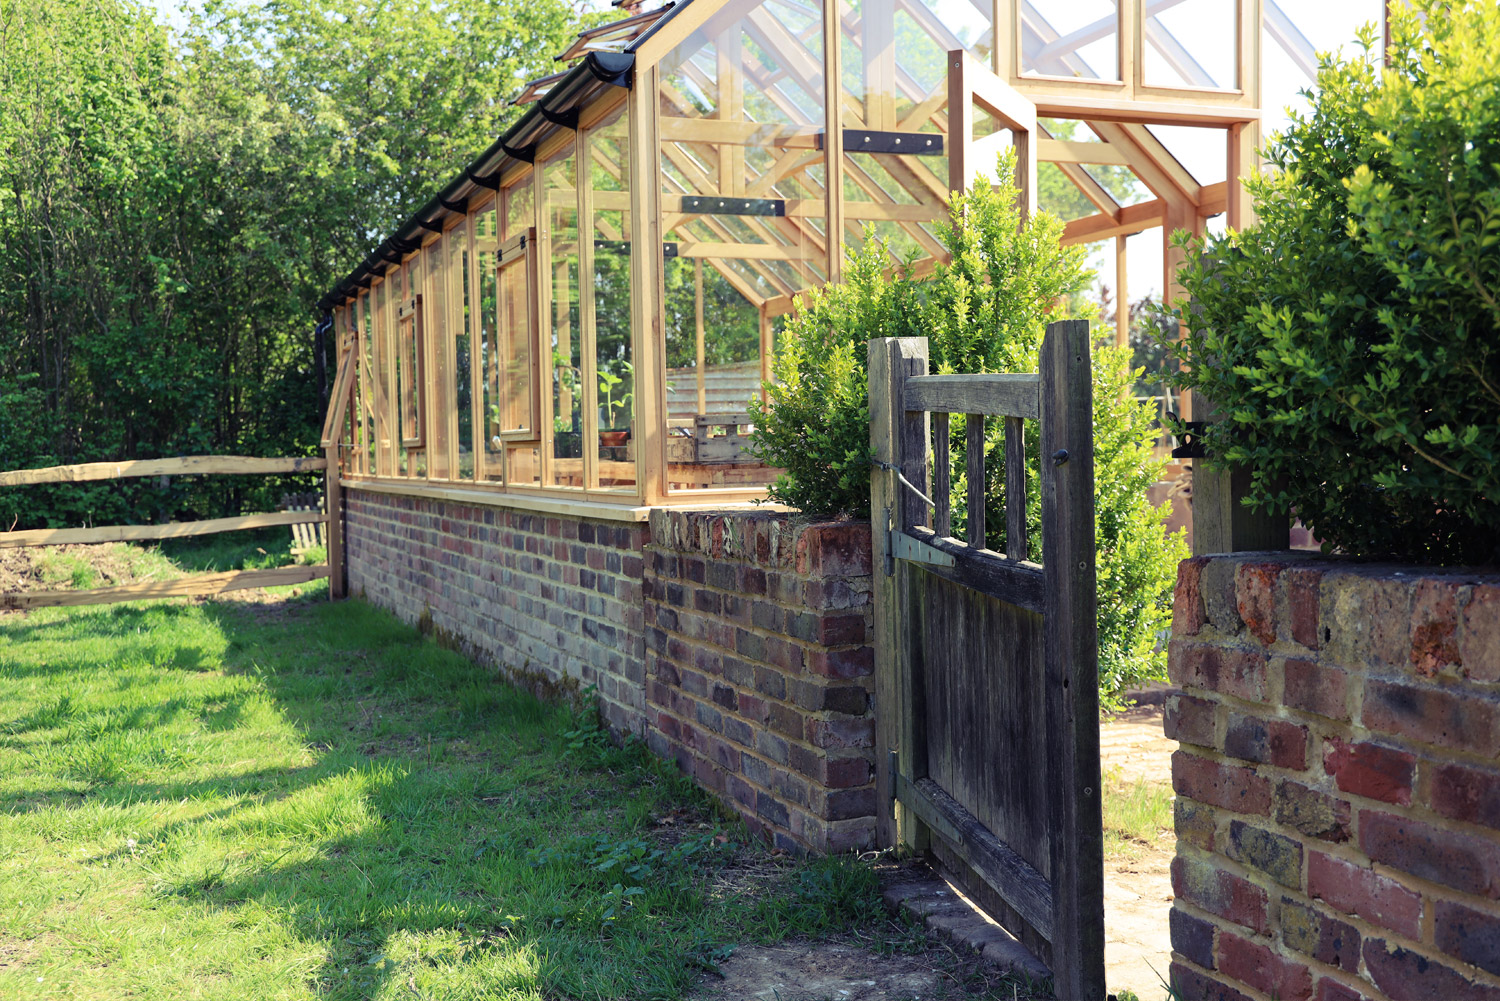 The new Greenhouse was installed in February and is now being put to good use as we enter spring.